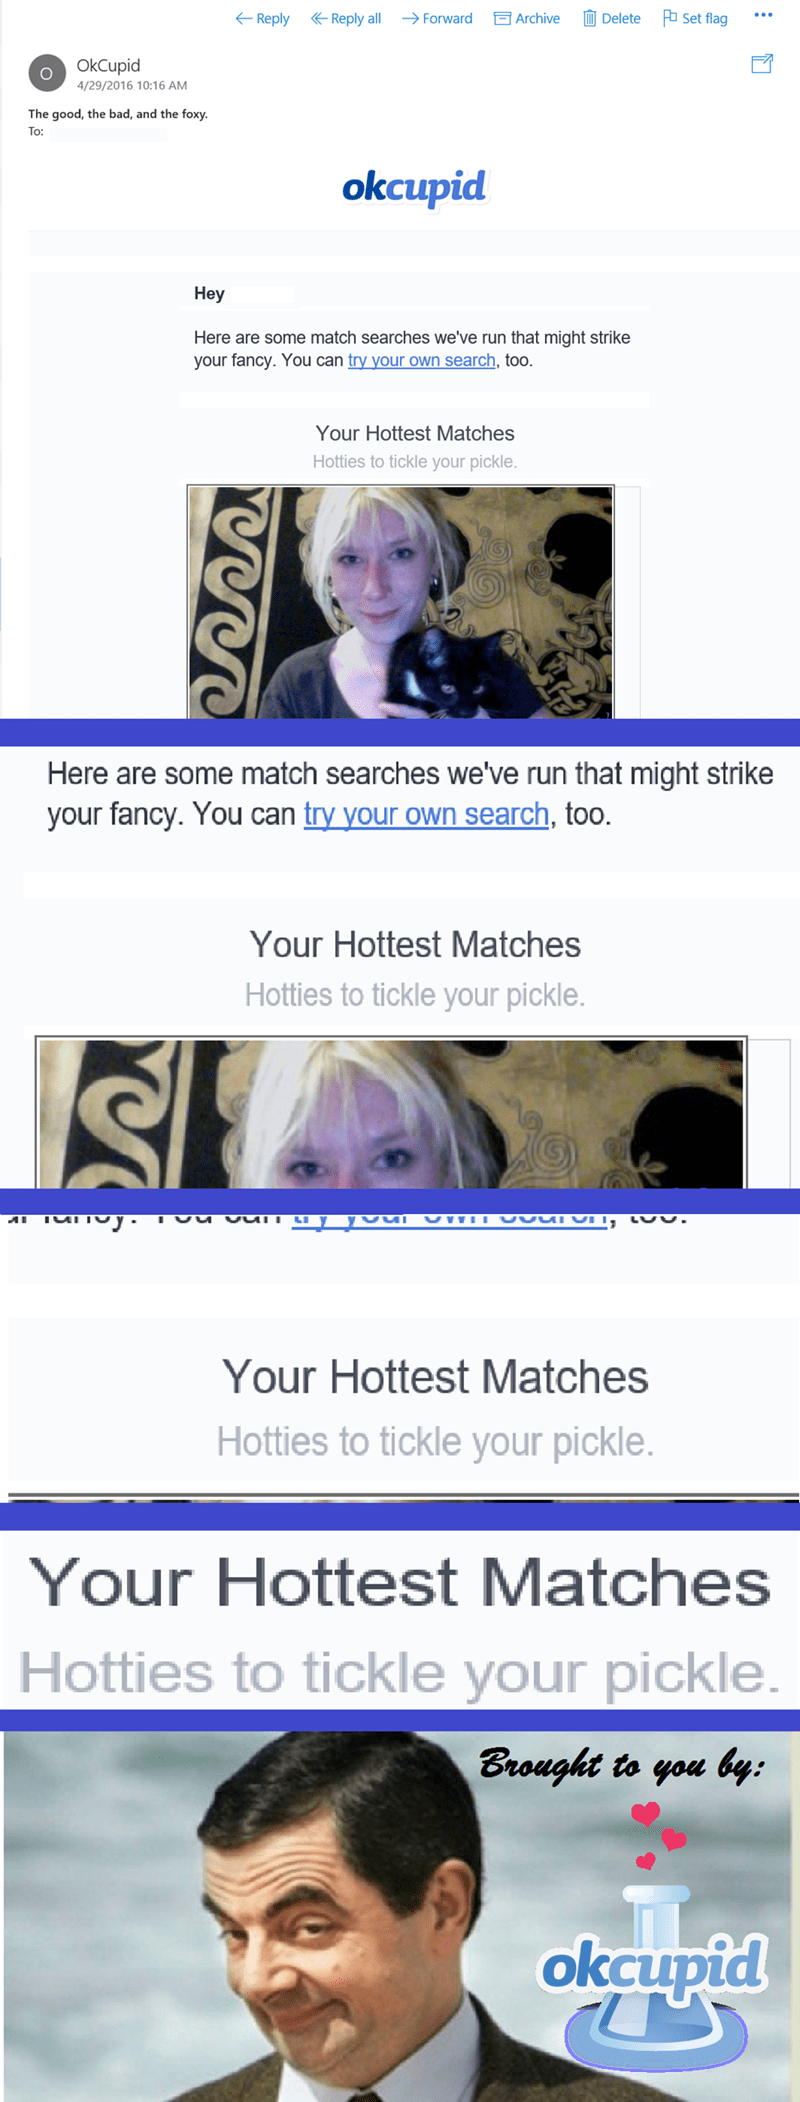 okcupid,internet,dating